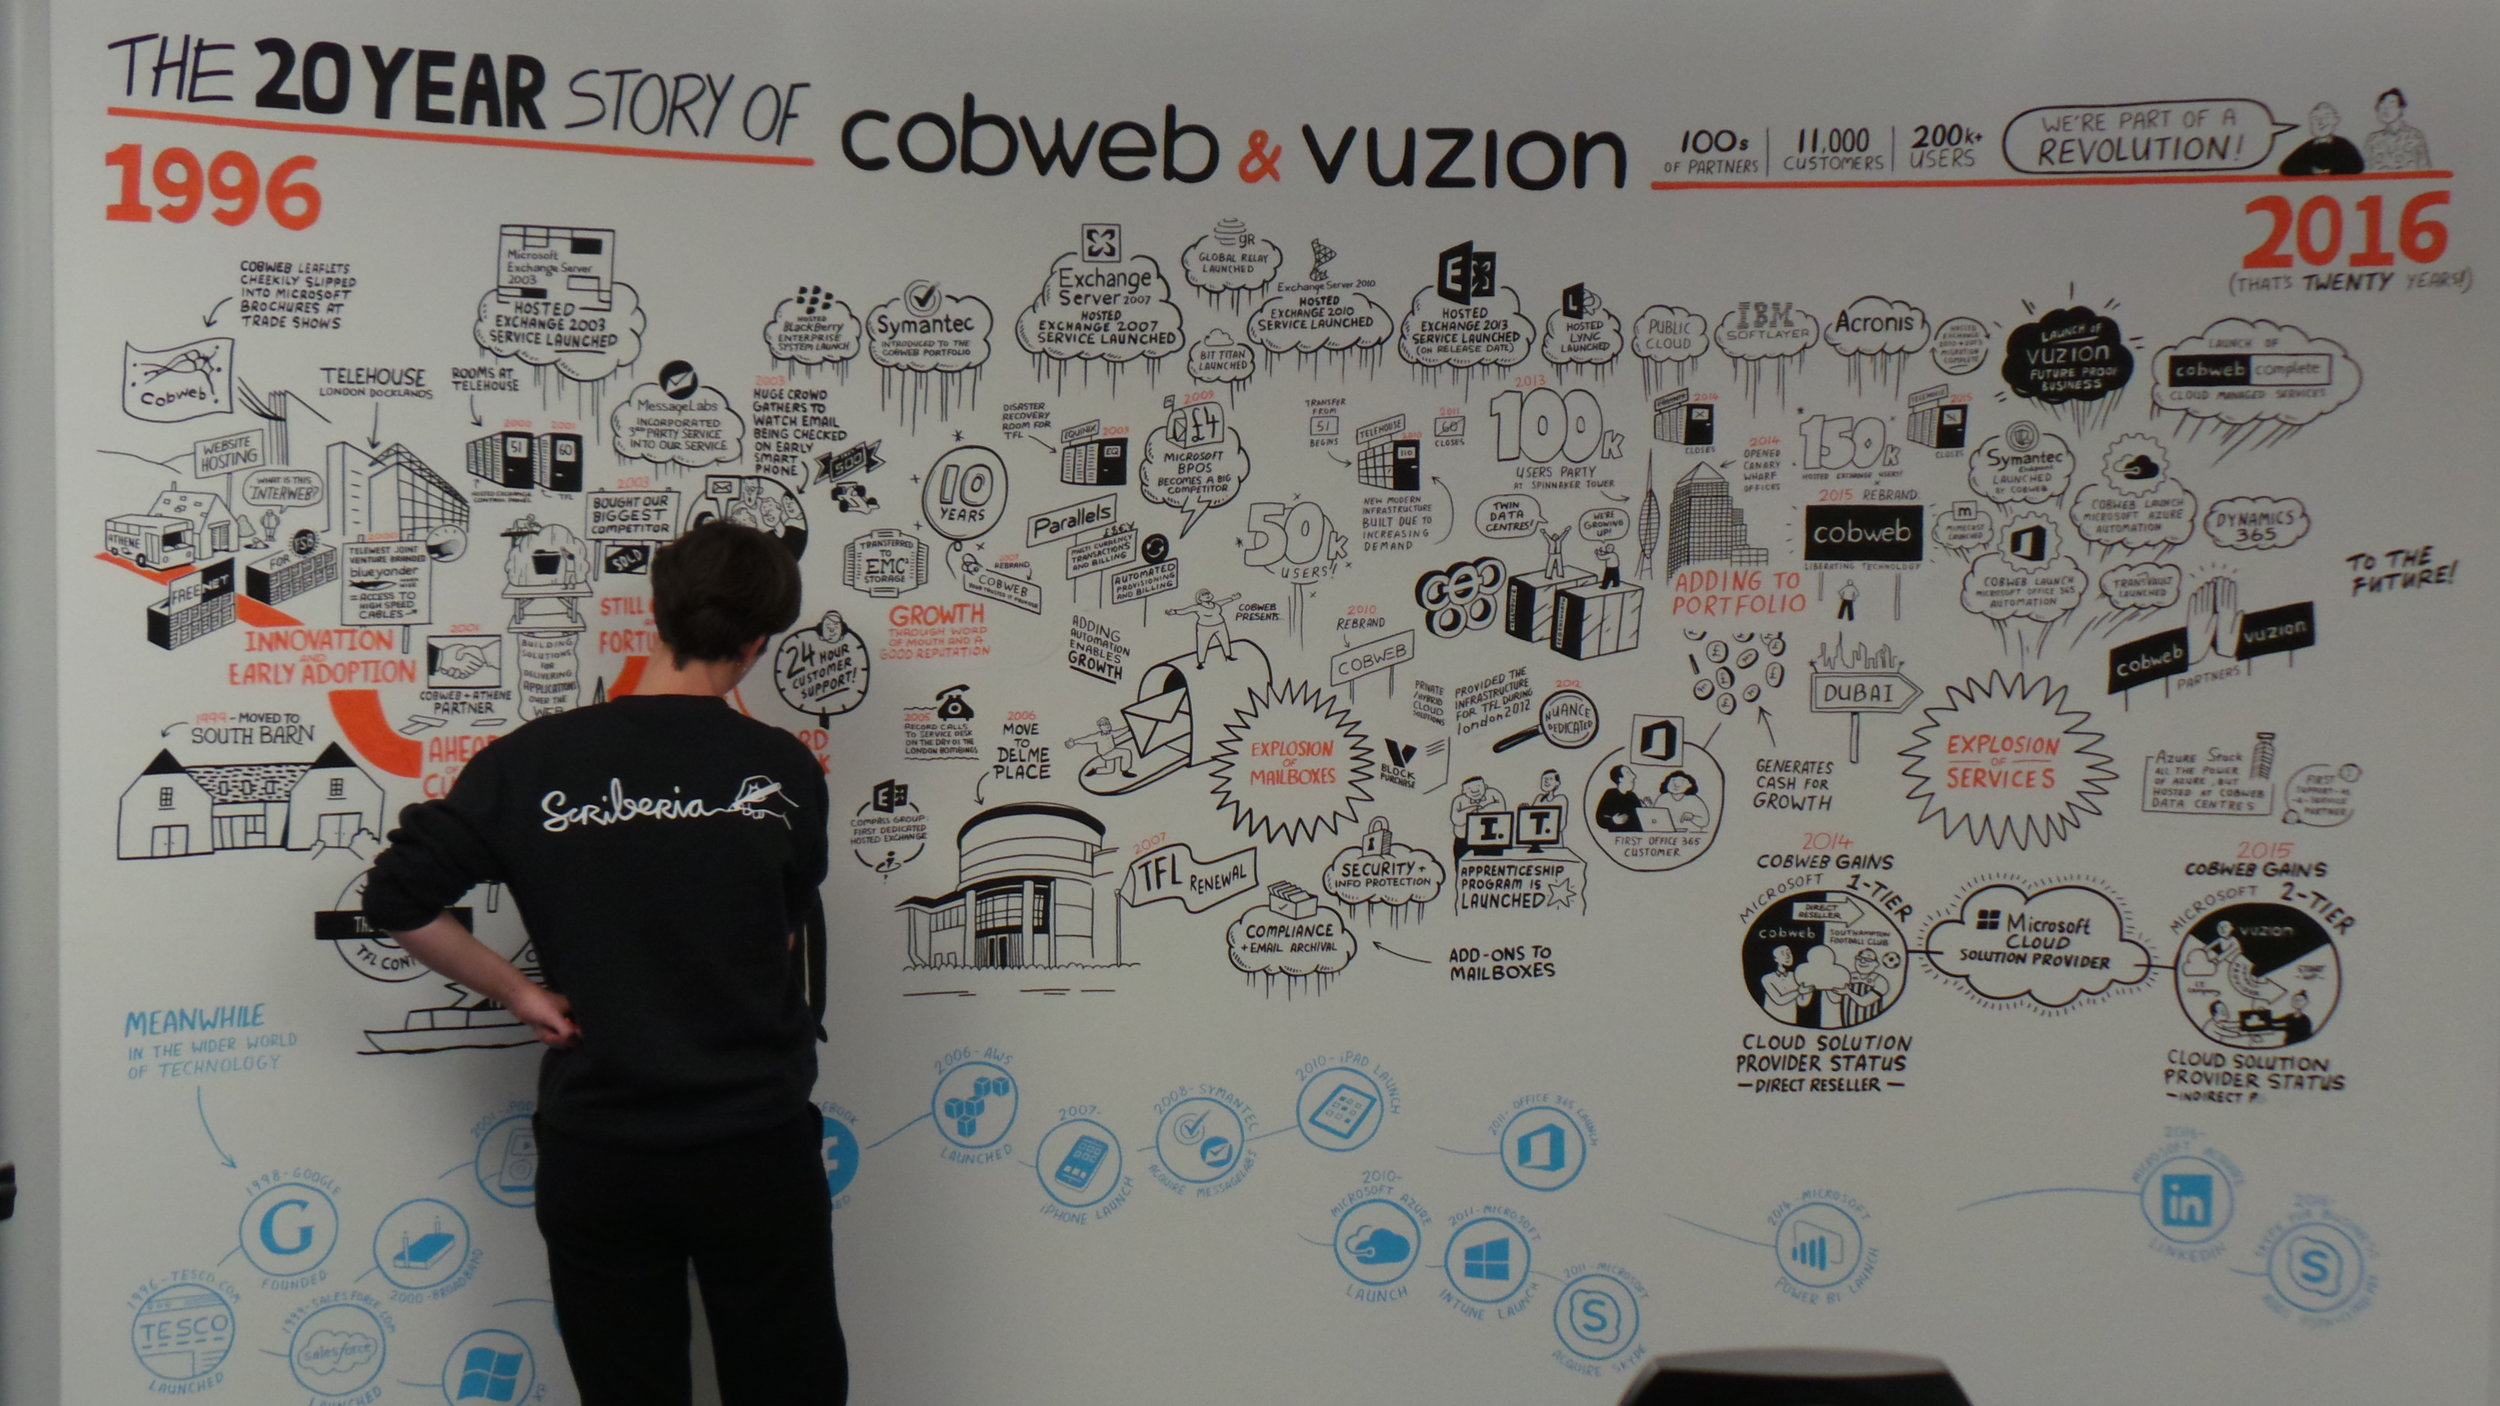 Scriberia Scribing Graphic Recording Office Mural Cobweb Rachel 2